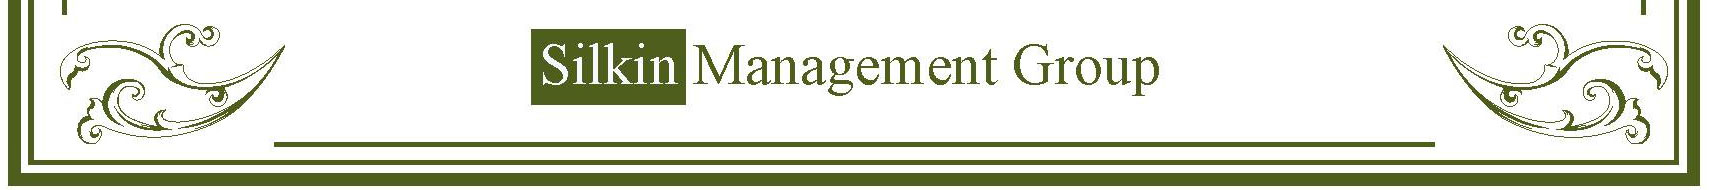 Silkin Management Group, Lifetime Warranty